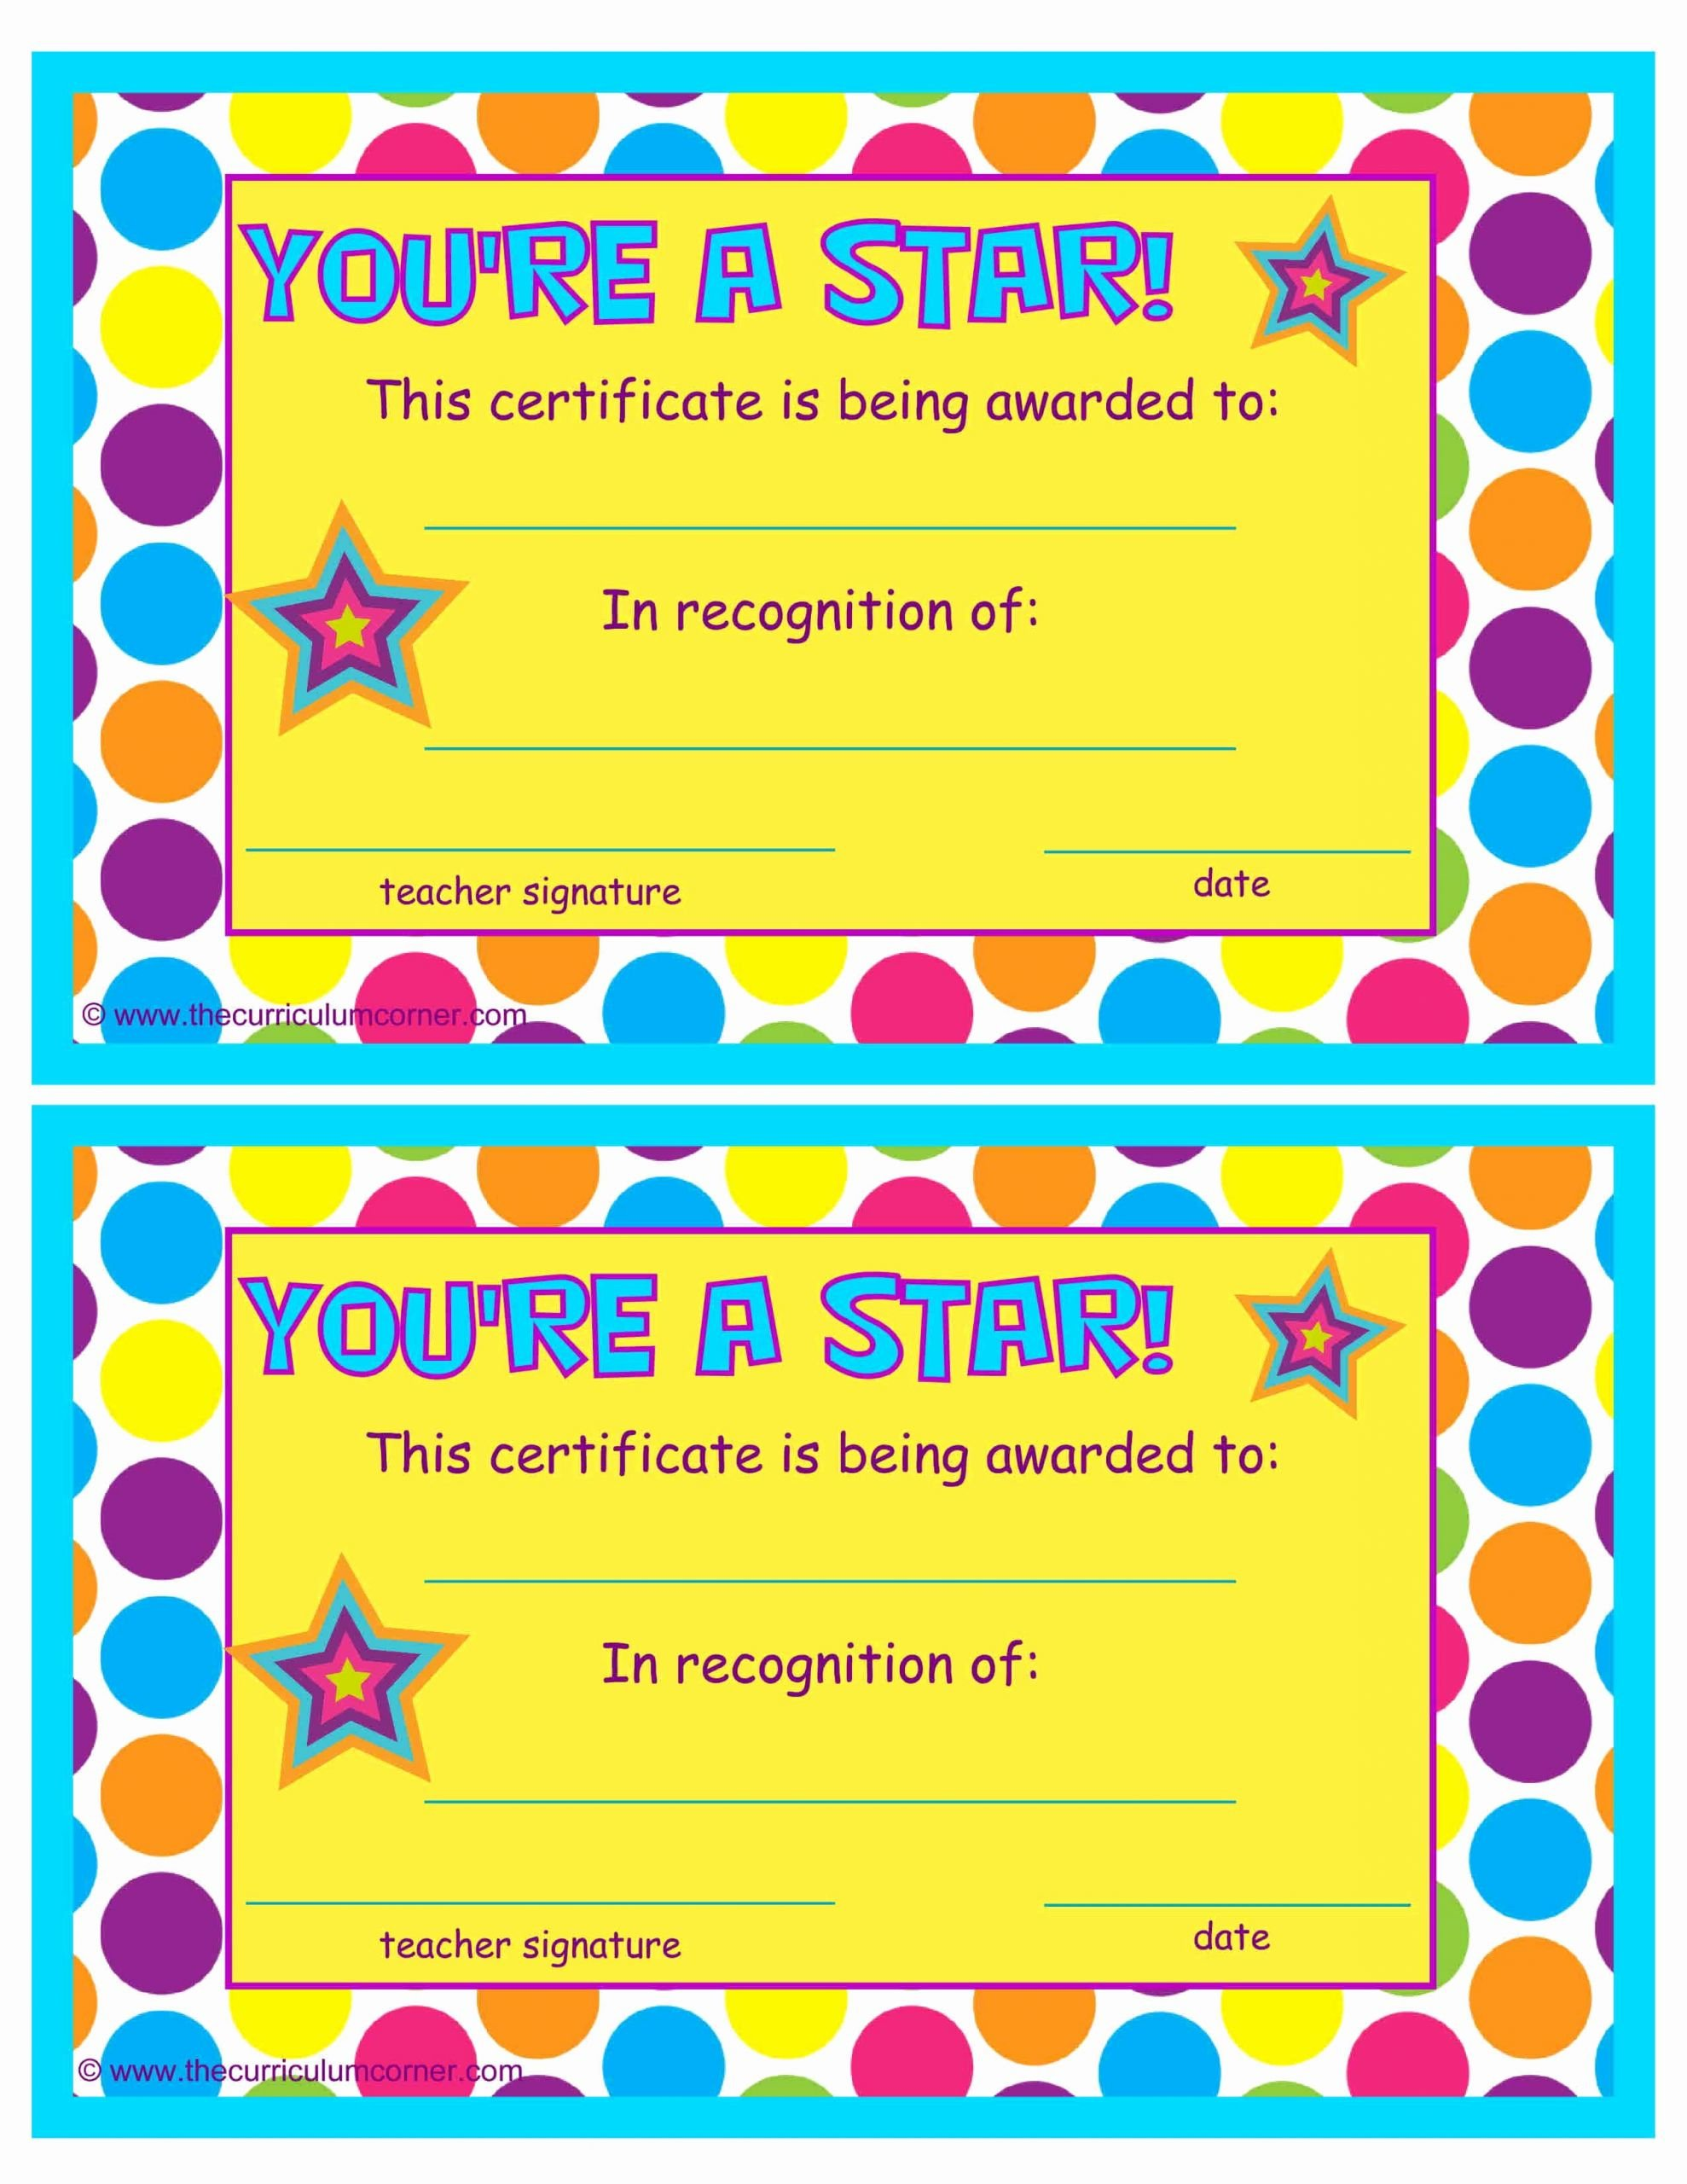 Most Improved Award Ideas Elegant You Re A Star End Of the Year Certificates the Kinder Corner